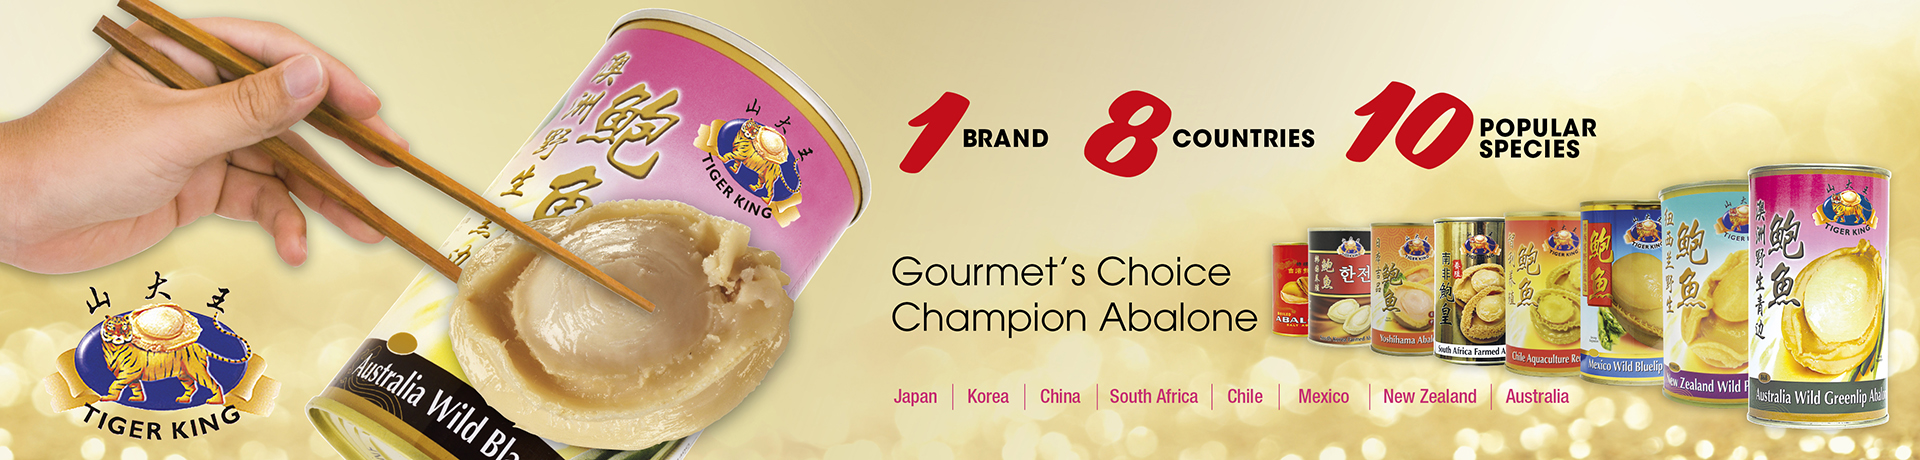 HHT_Homepage Top Banner_Abalone_1920x460_2